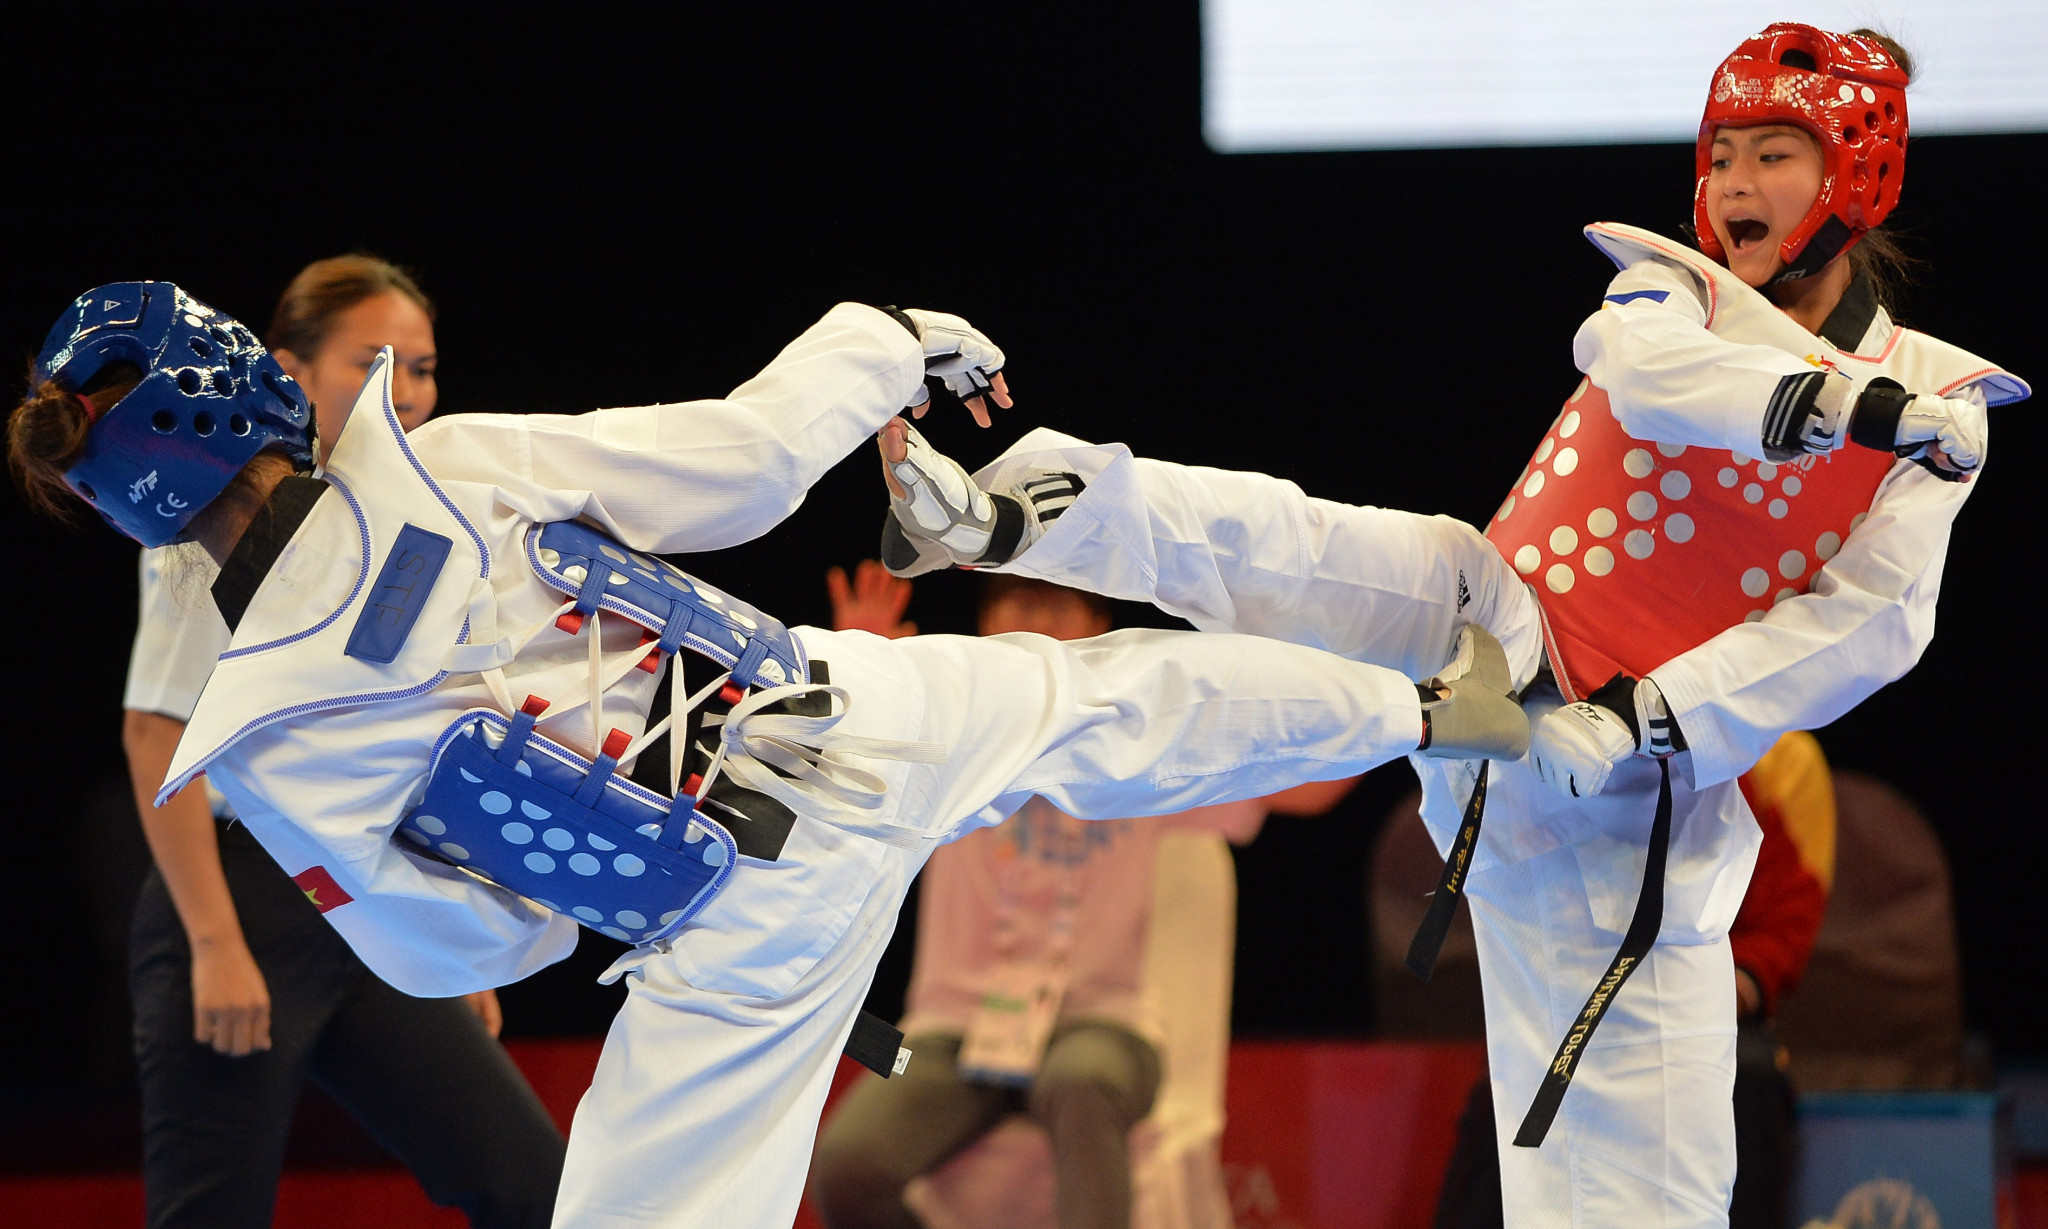 Filipino taekwondo star Lopez part of legacy campaign for children